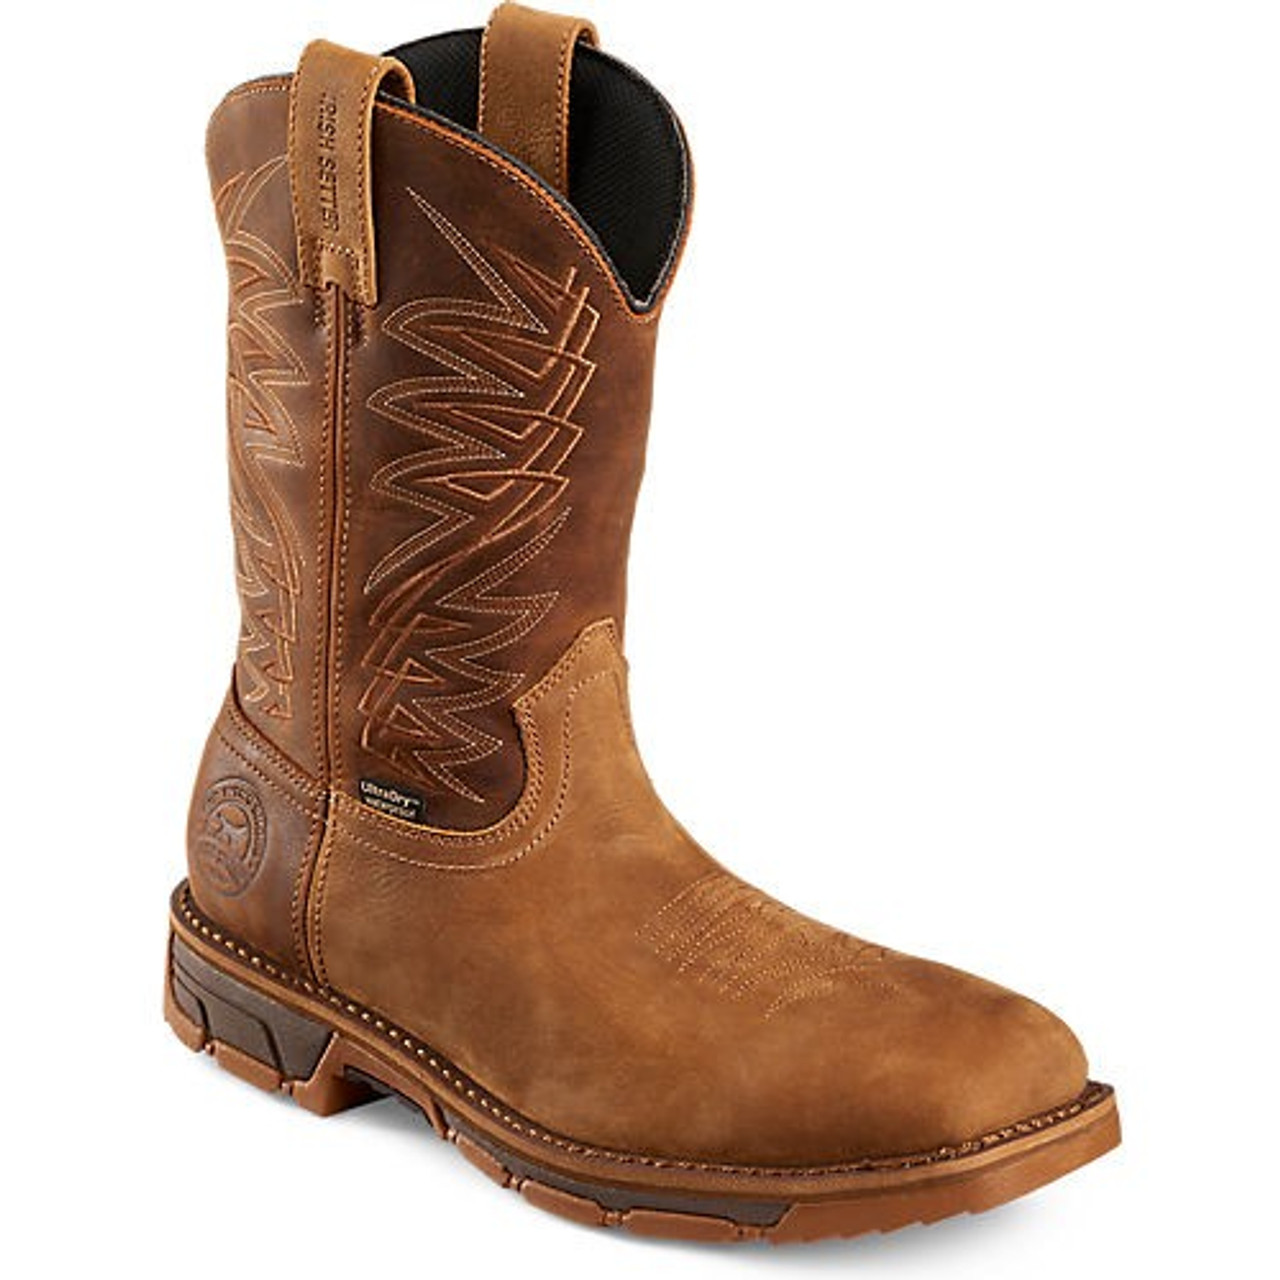 e6ee3f98e3c Irish Setter By Red Wing Boots - Marshall Waterproof Steel Toe Western Work  - Tan / Brown